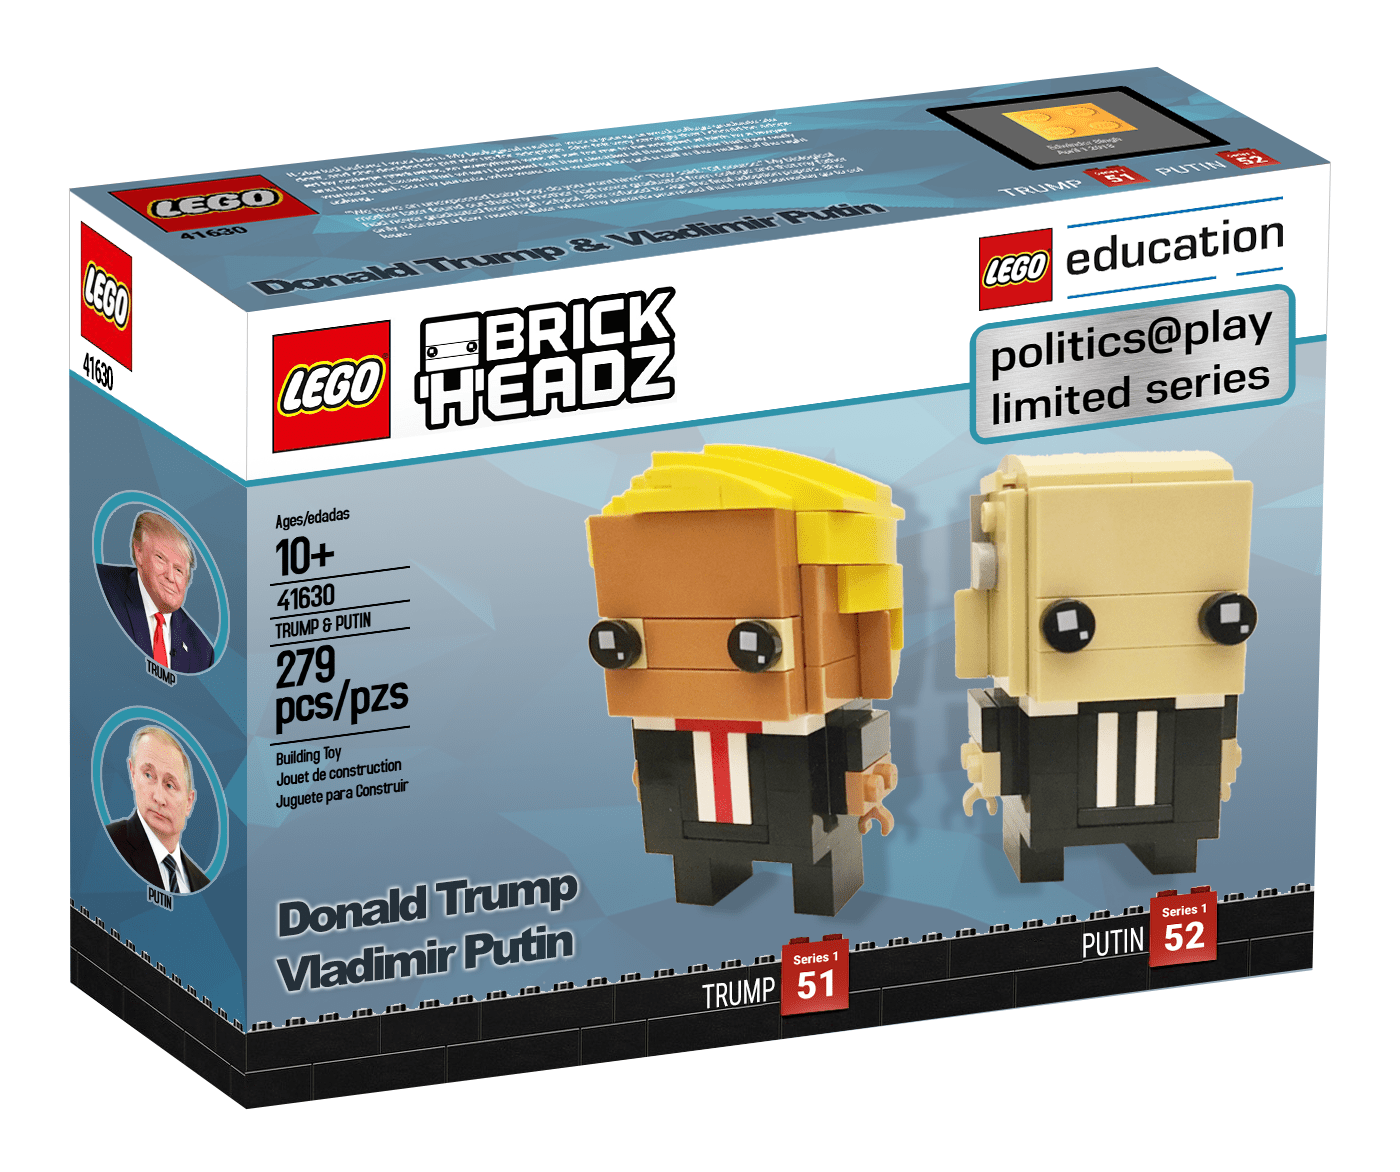 Lego Education Launches Brickheadz Series With 41630 Trump Putin Double Pack Fake News The Brothers Brick Lego Education Lego Lego Projects